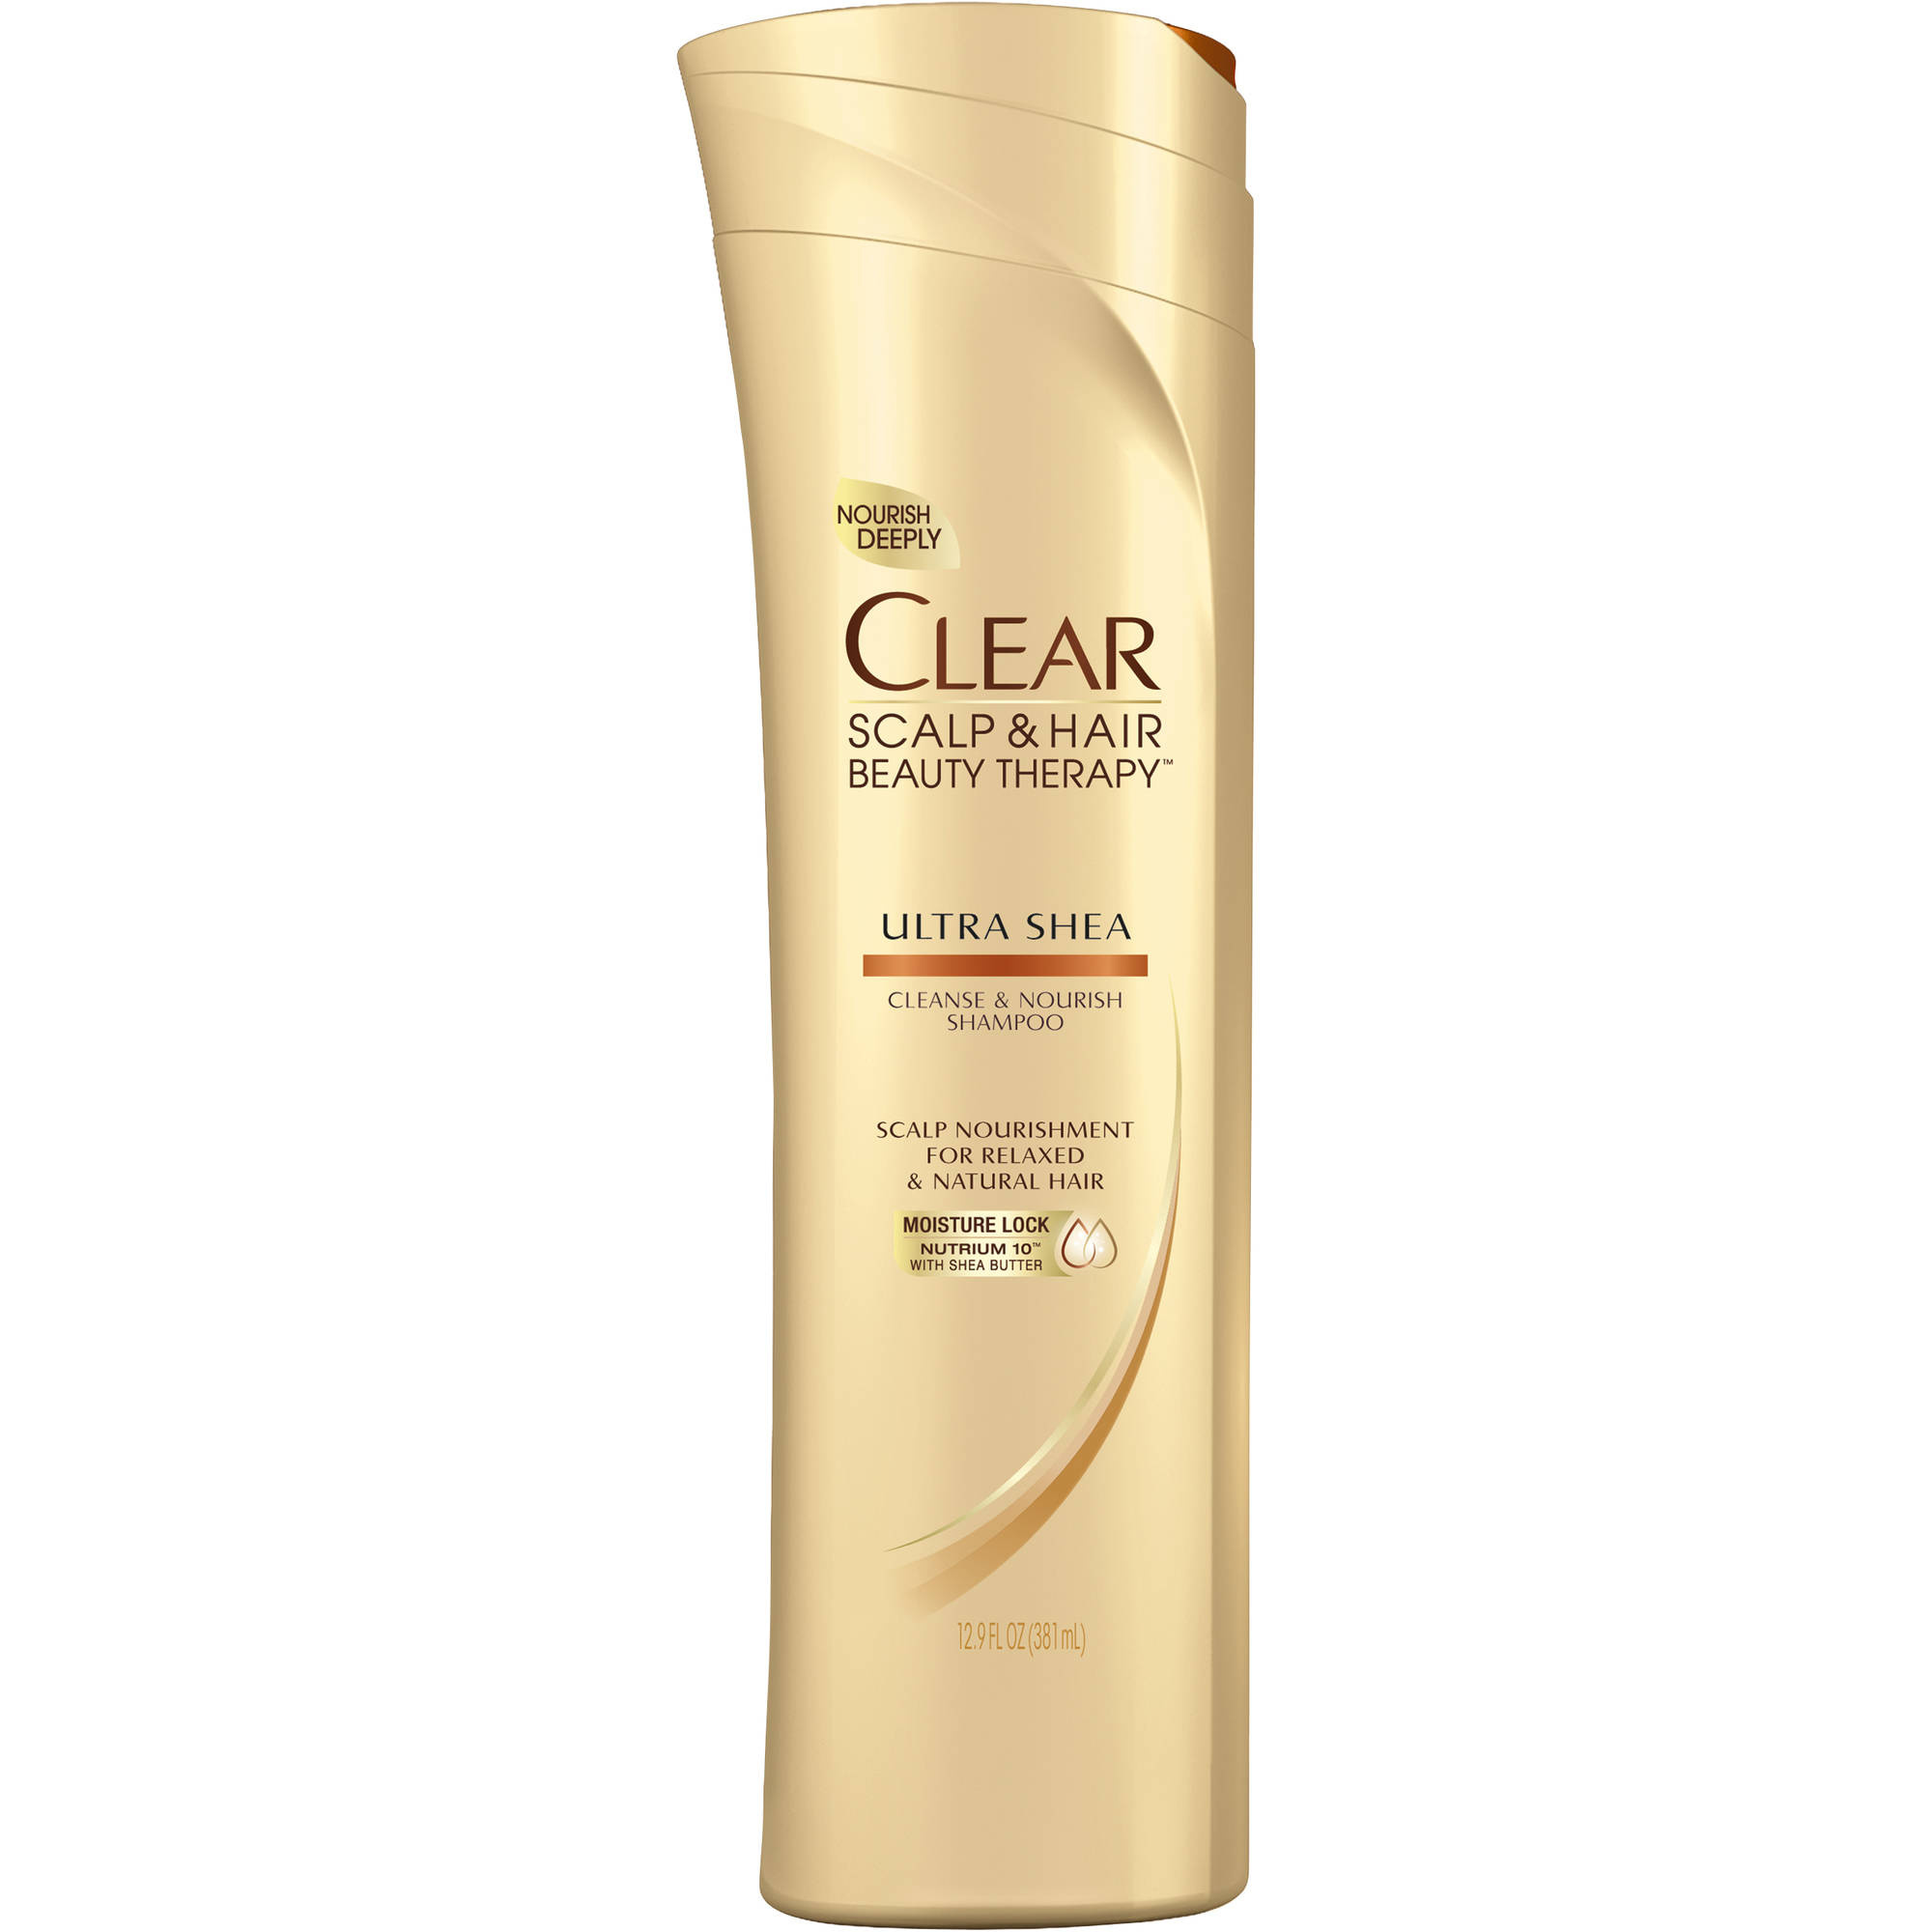 Clear Complete Care Shampoo 12.9 oz